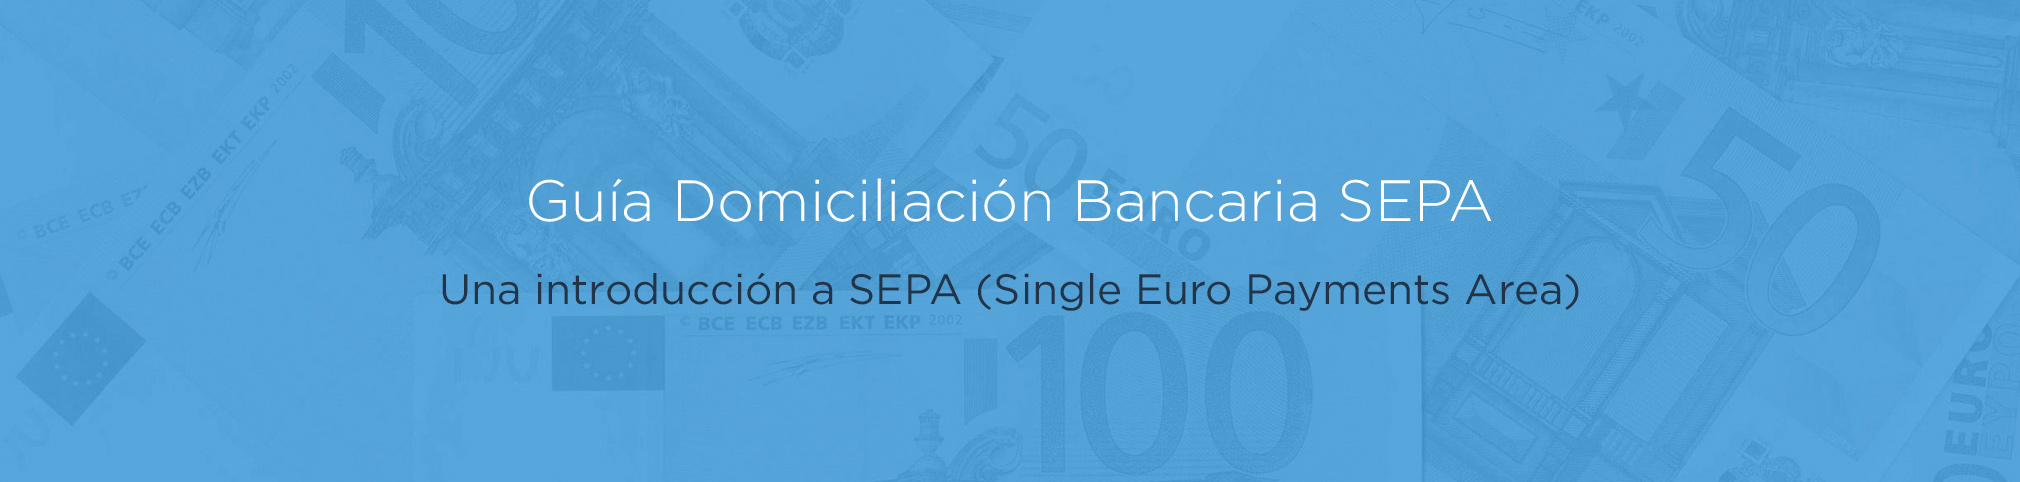 Guía Domiciliación Bancaria SEPA: Una introducción a SEPA (Single Euro Payments Area)